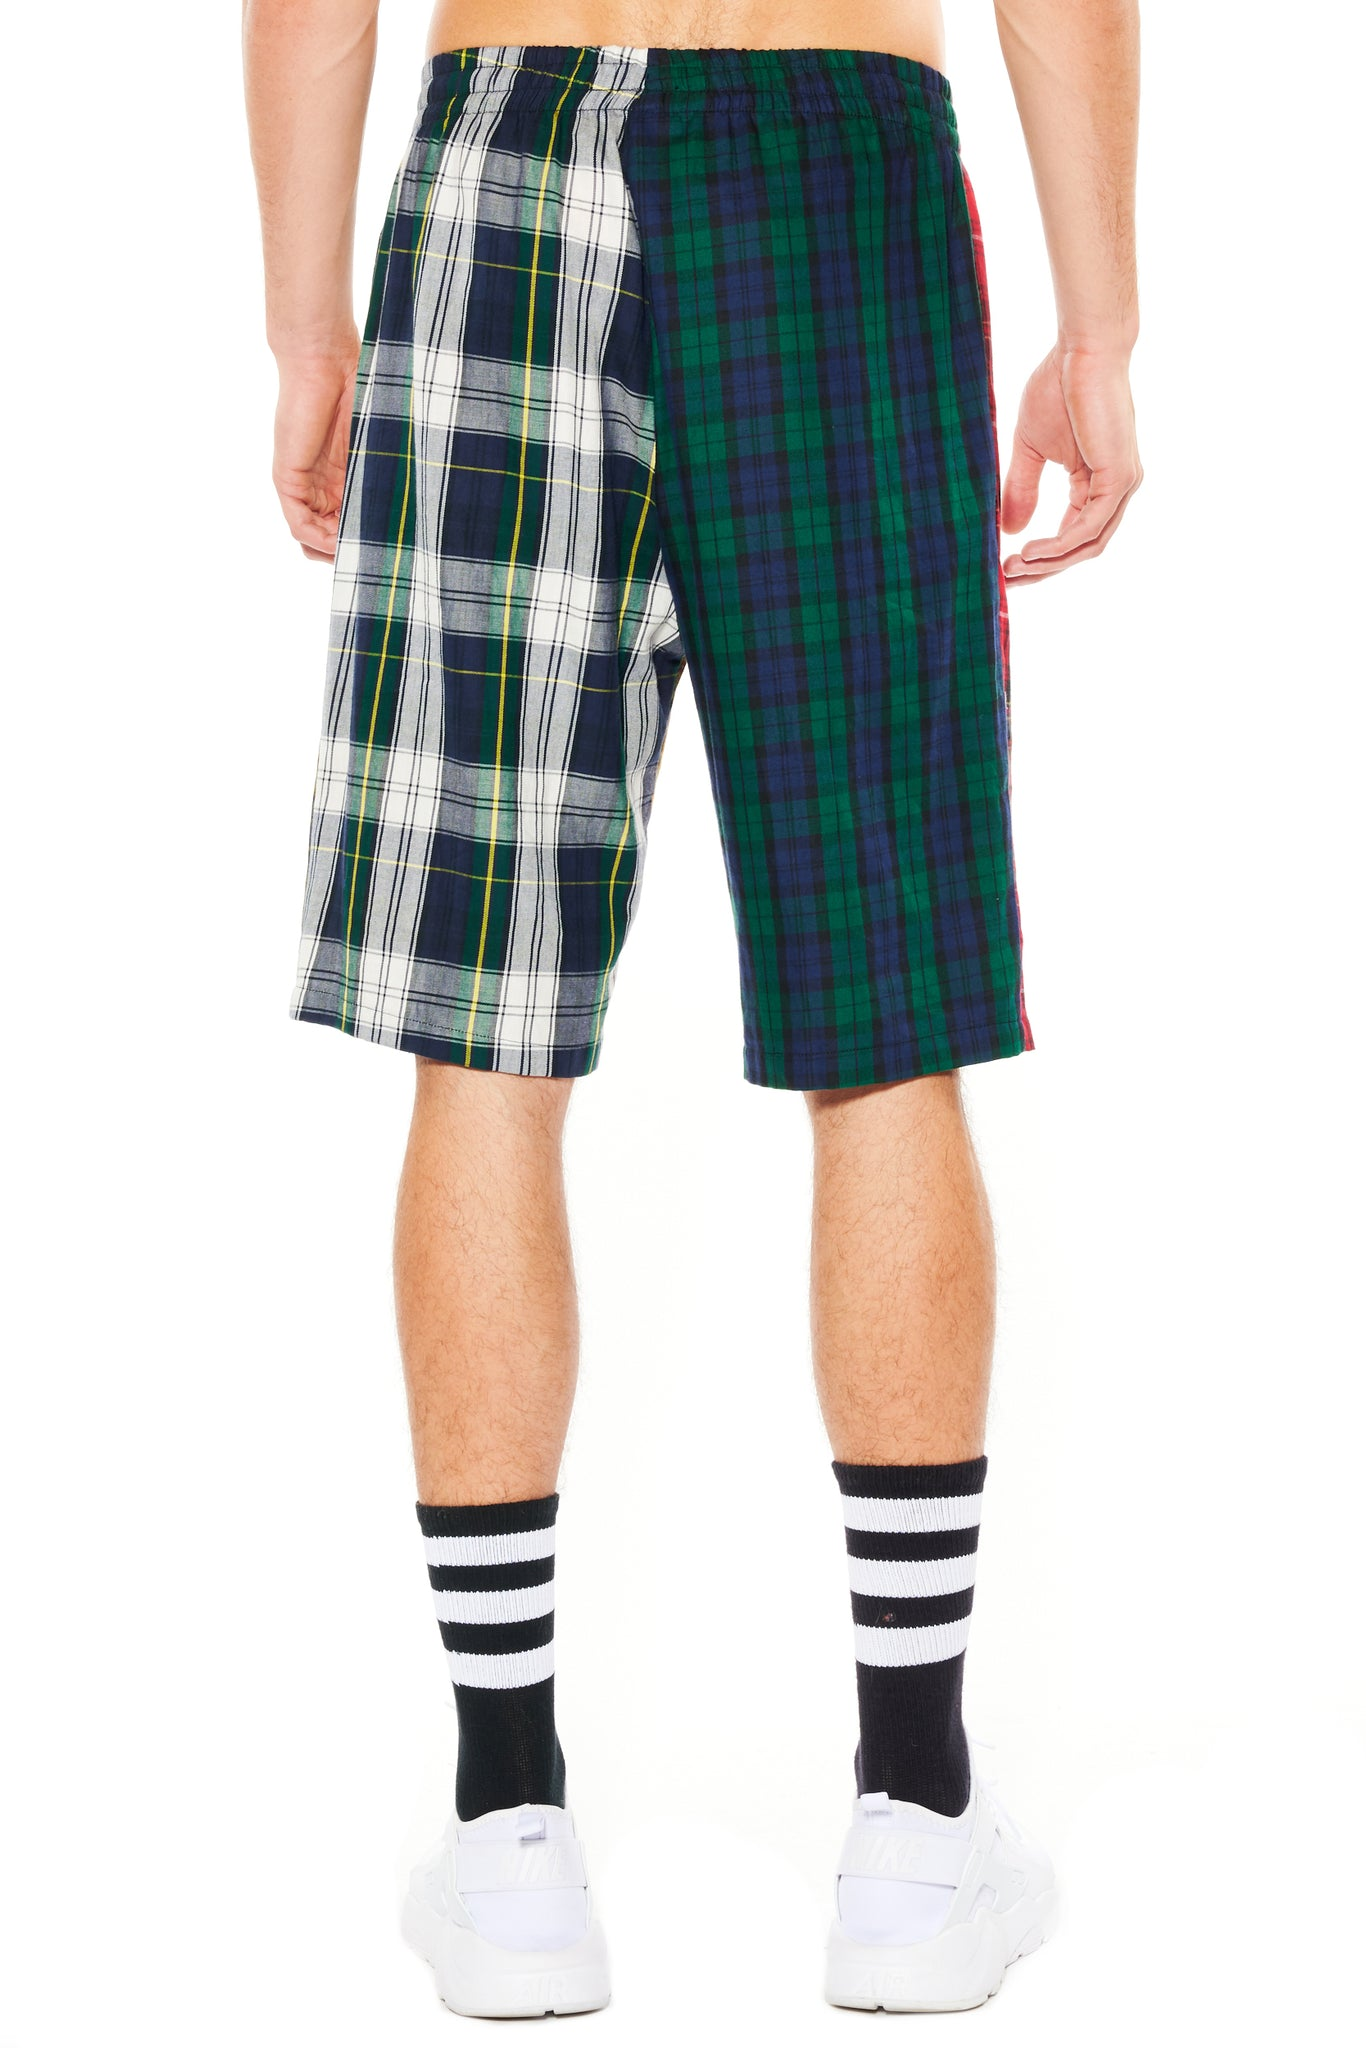 """PLAIDITUDES"" SHORTS - Men's Bottoms - Libertine"